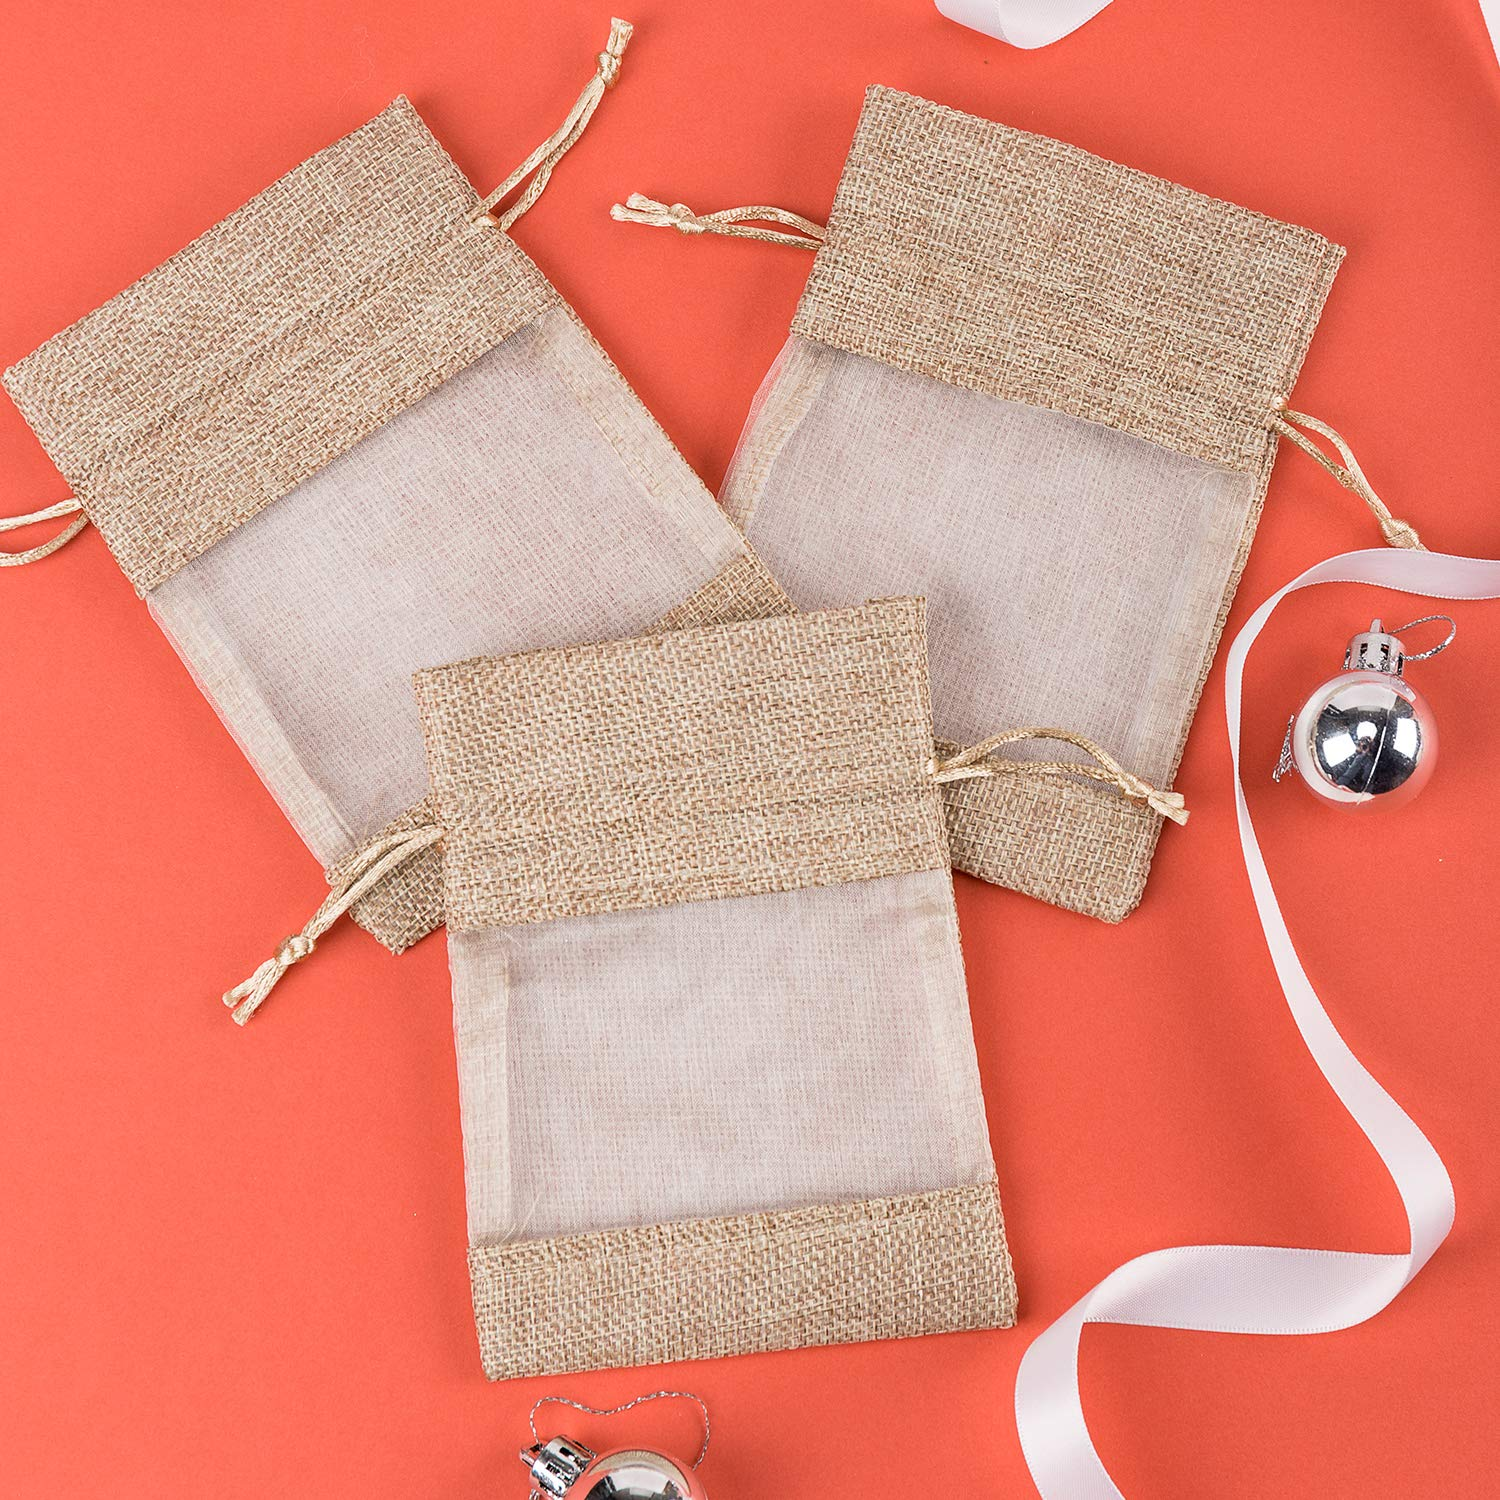 WRAPAHOLIC 4x5.5 inch 20 pcs Burlap Drawstring Gift Bag - Burlap with One Side Organza Wedding Party Welcome Favor Bags - Tan